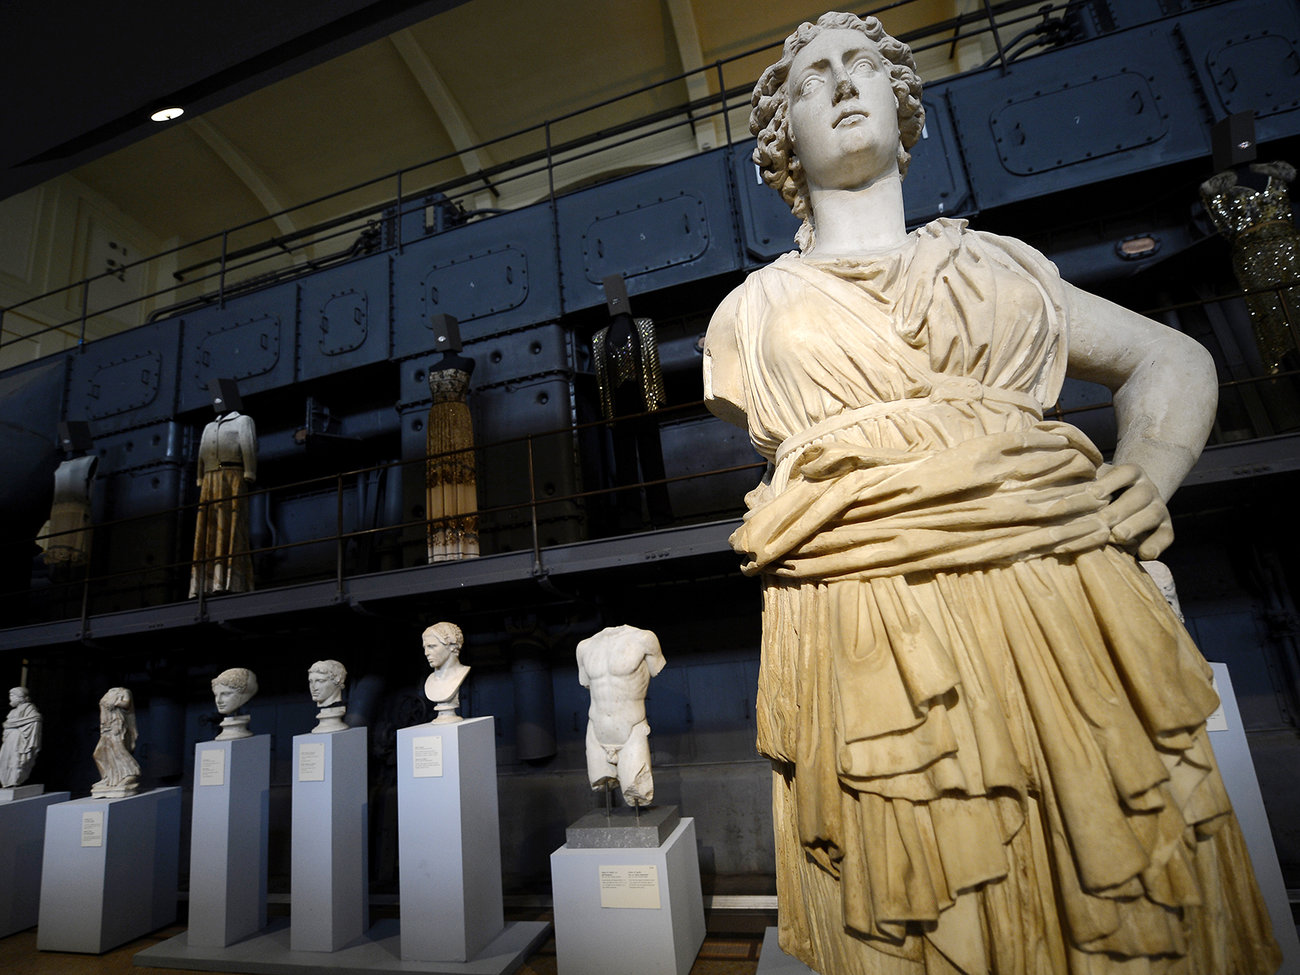 Centrale Montemartini Sculpture Museum in Rome